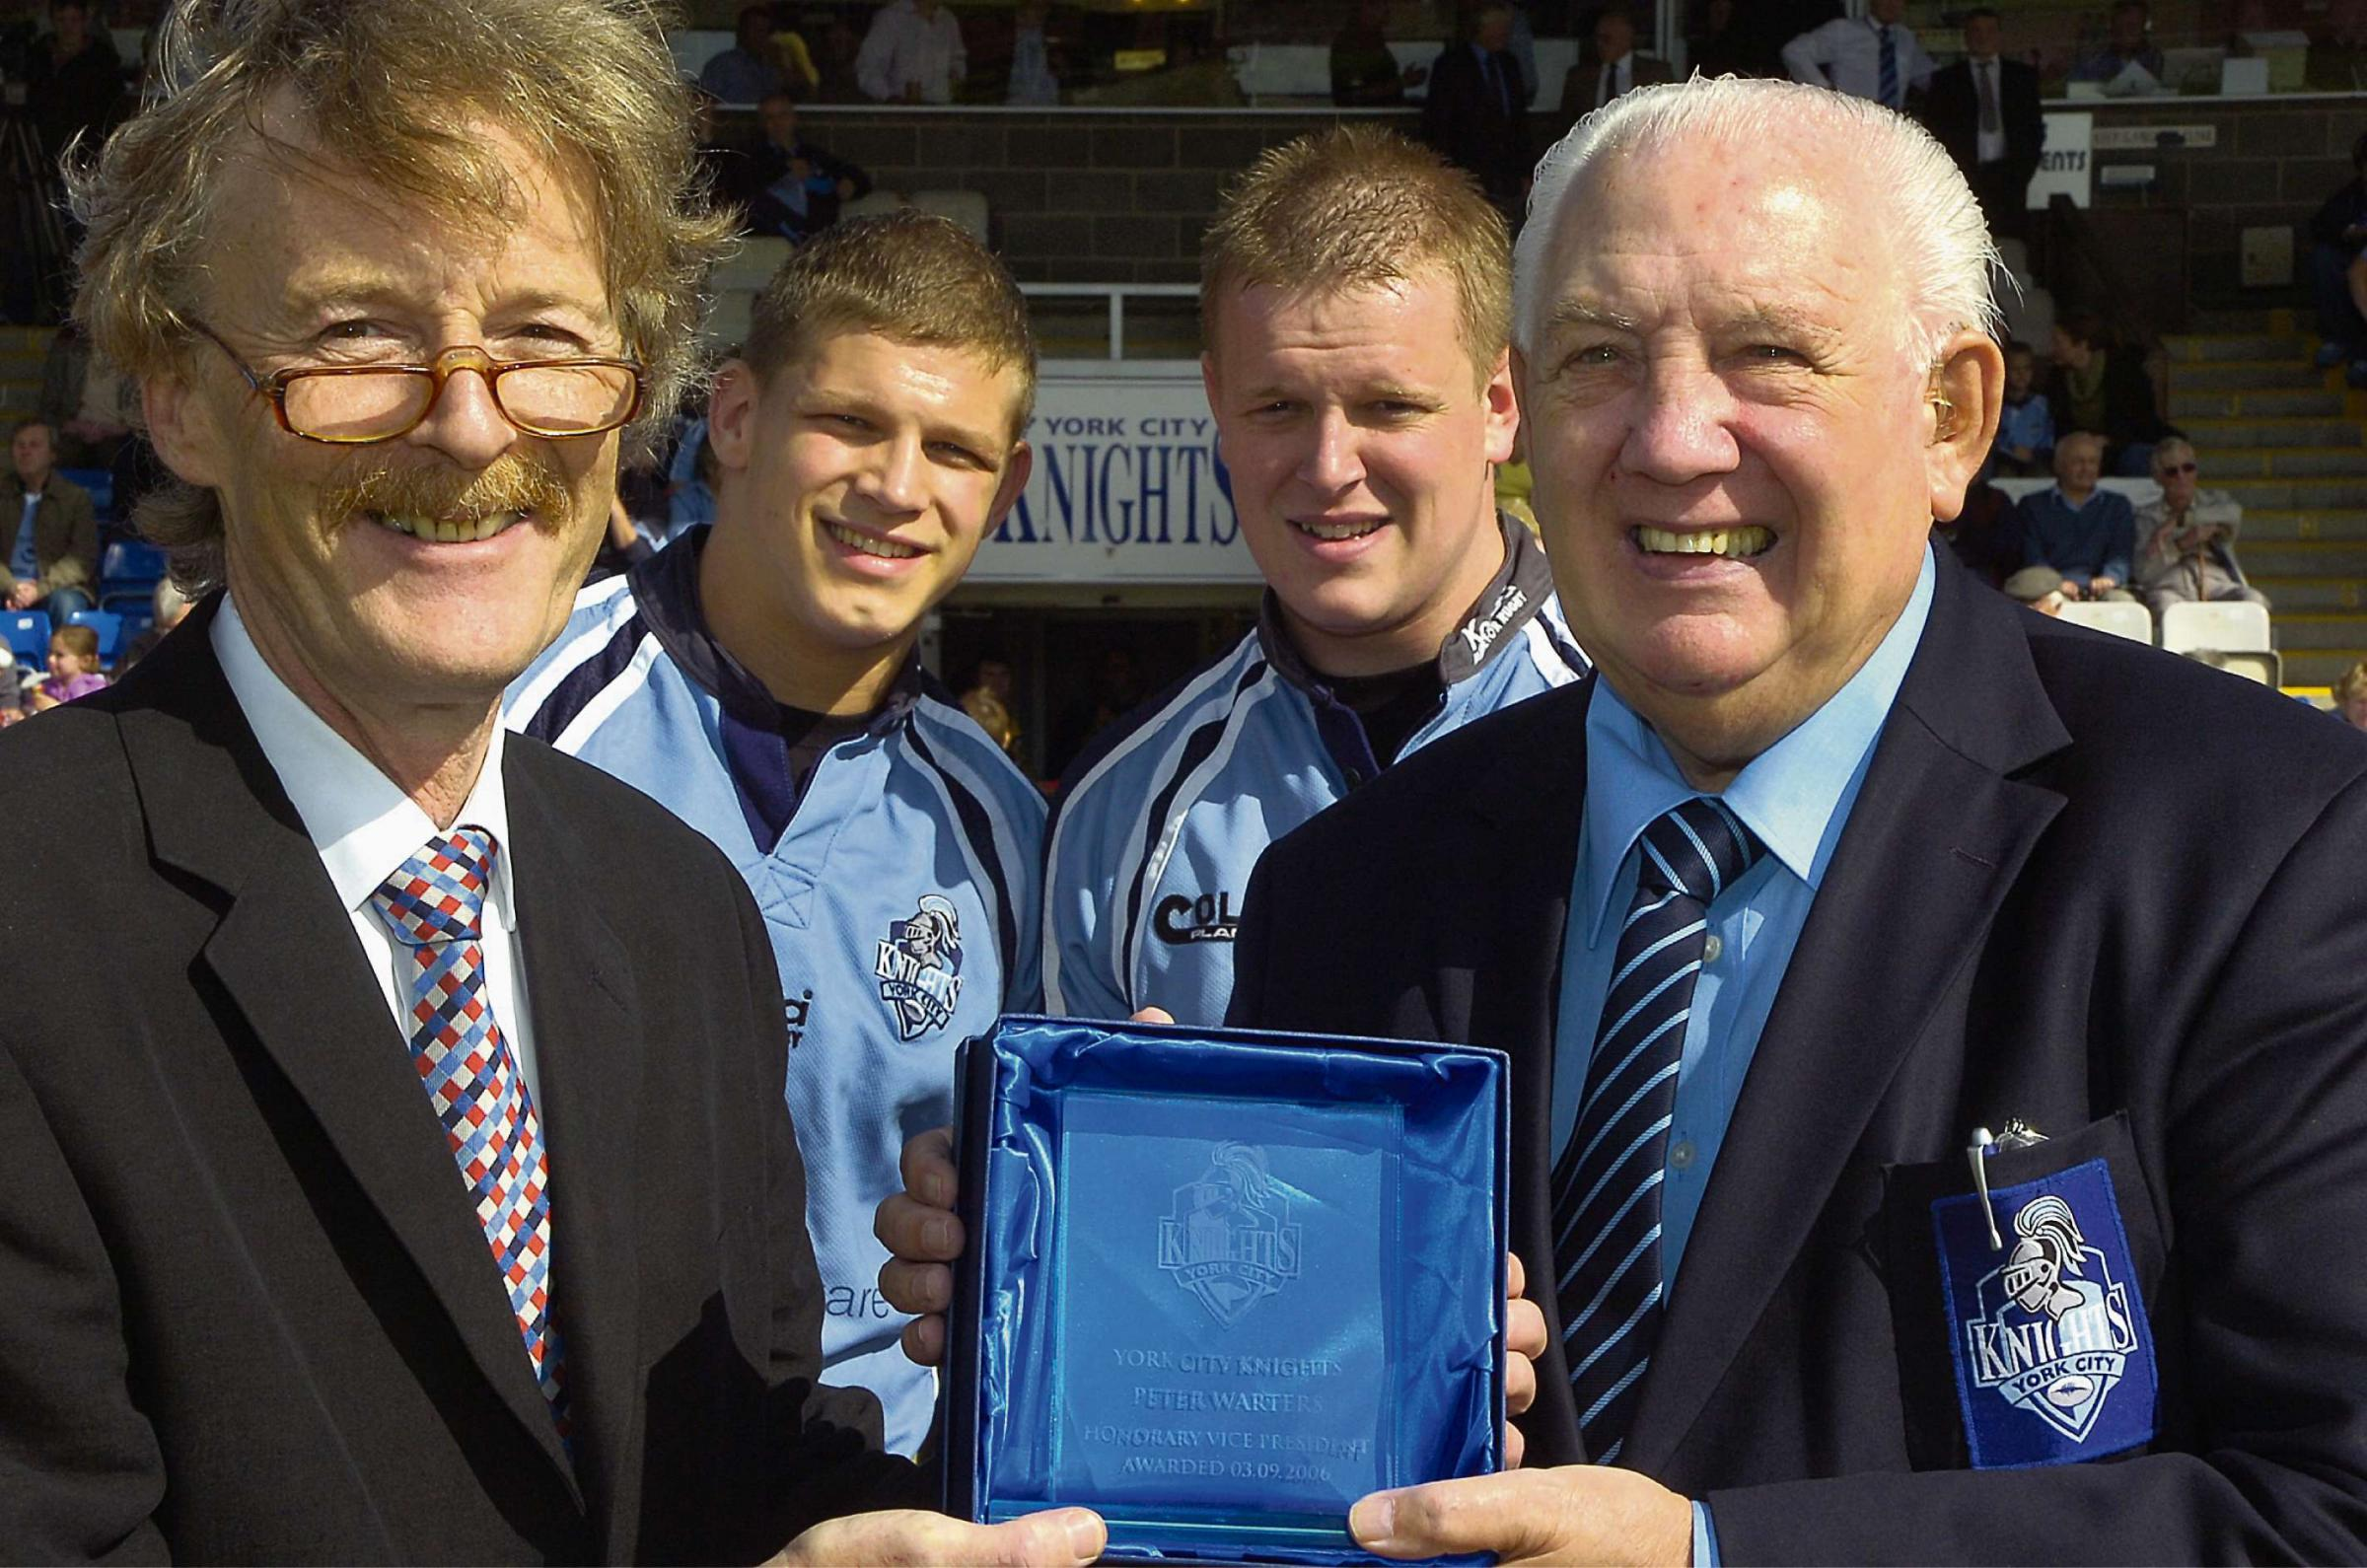 YORK RUGBY LEGEND: Pete Warters, right, is presented with his York City Knights Honorary Vice-Presidency in 2006 by the then club chairman Roger Dixon, watched by his grandsons Peter Fox and Jonny Liddell, both Knights stars at that time